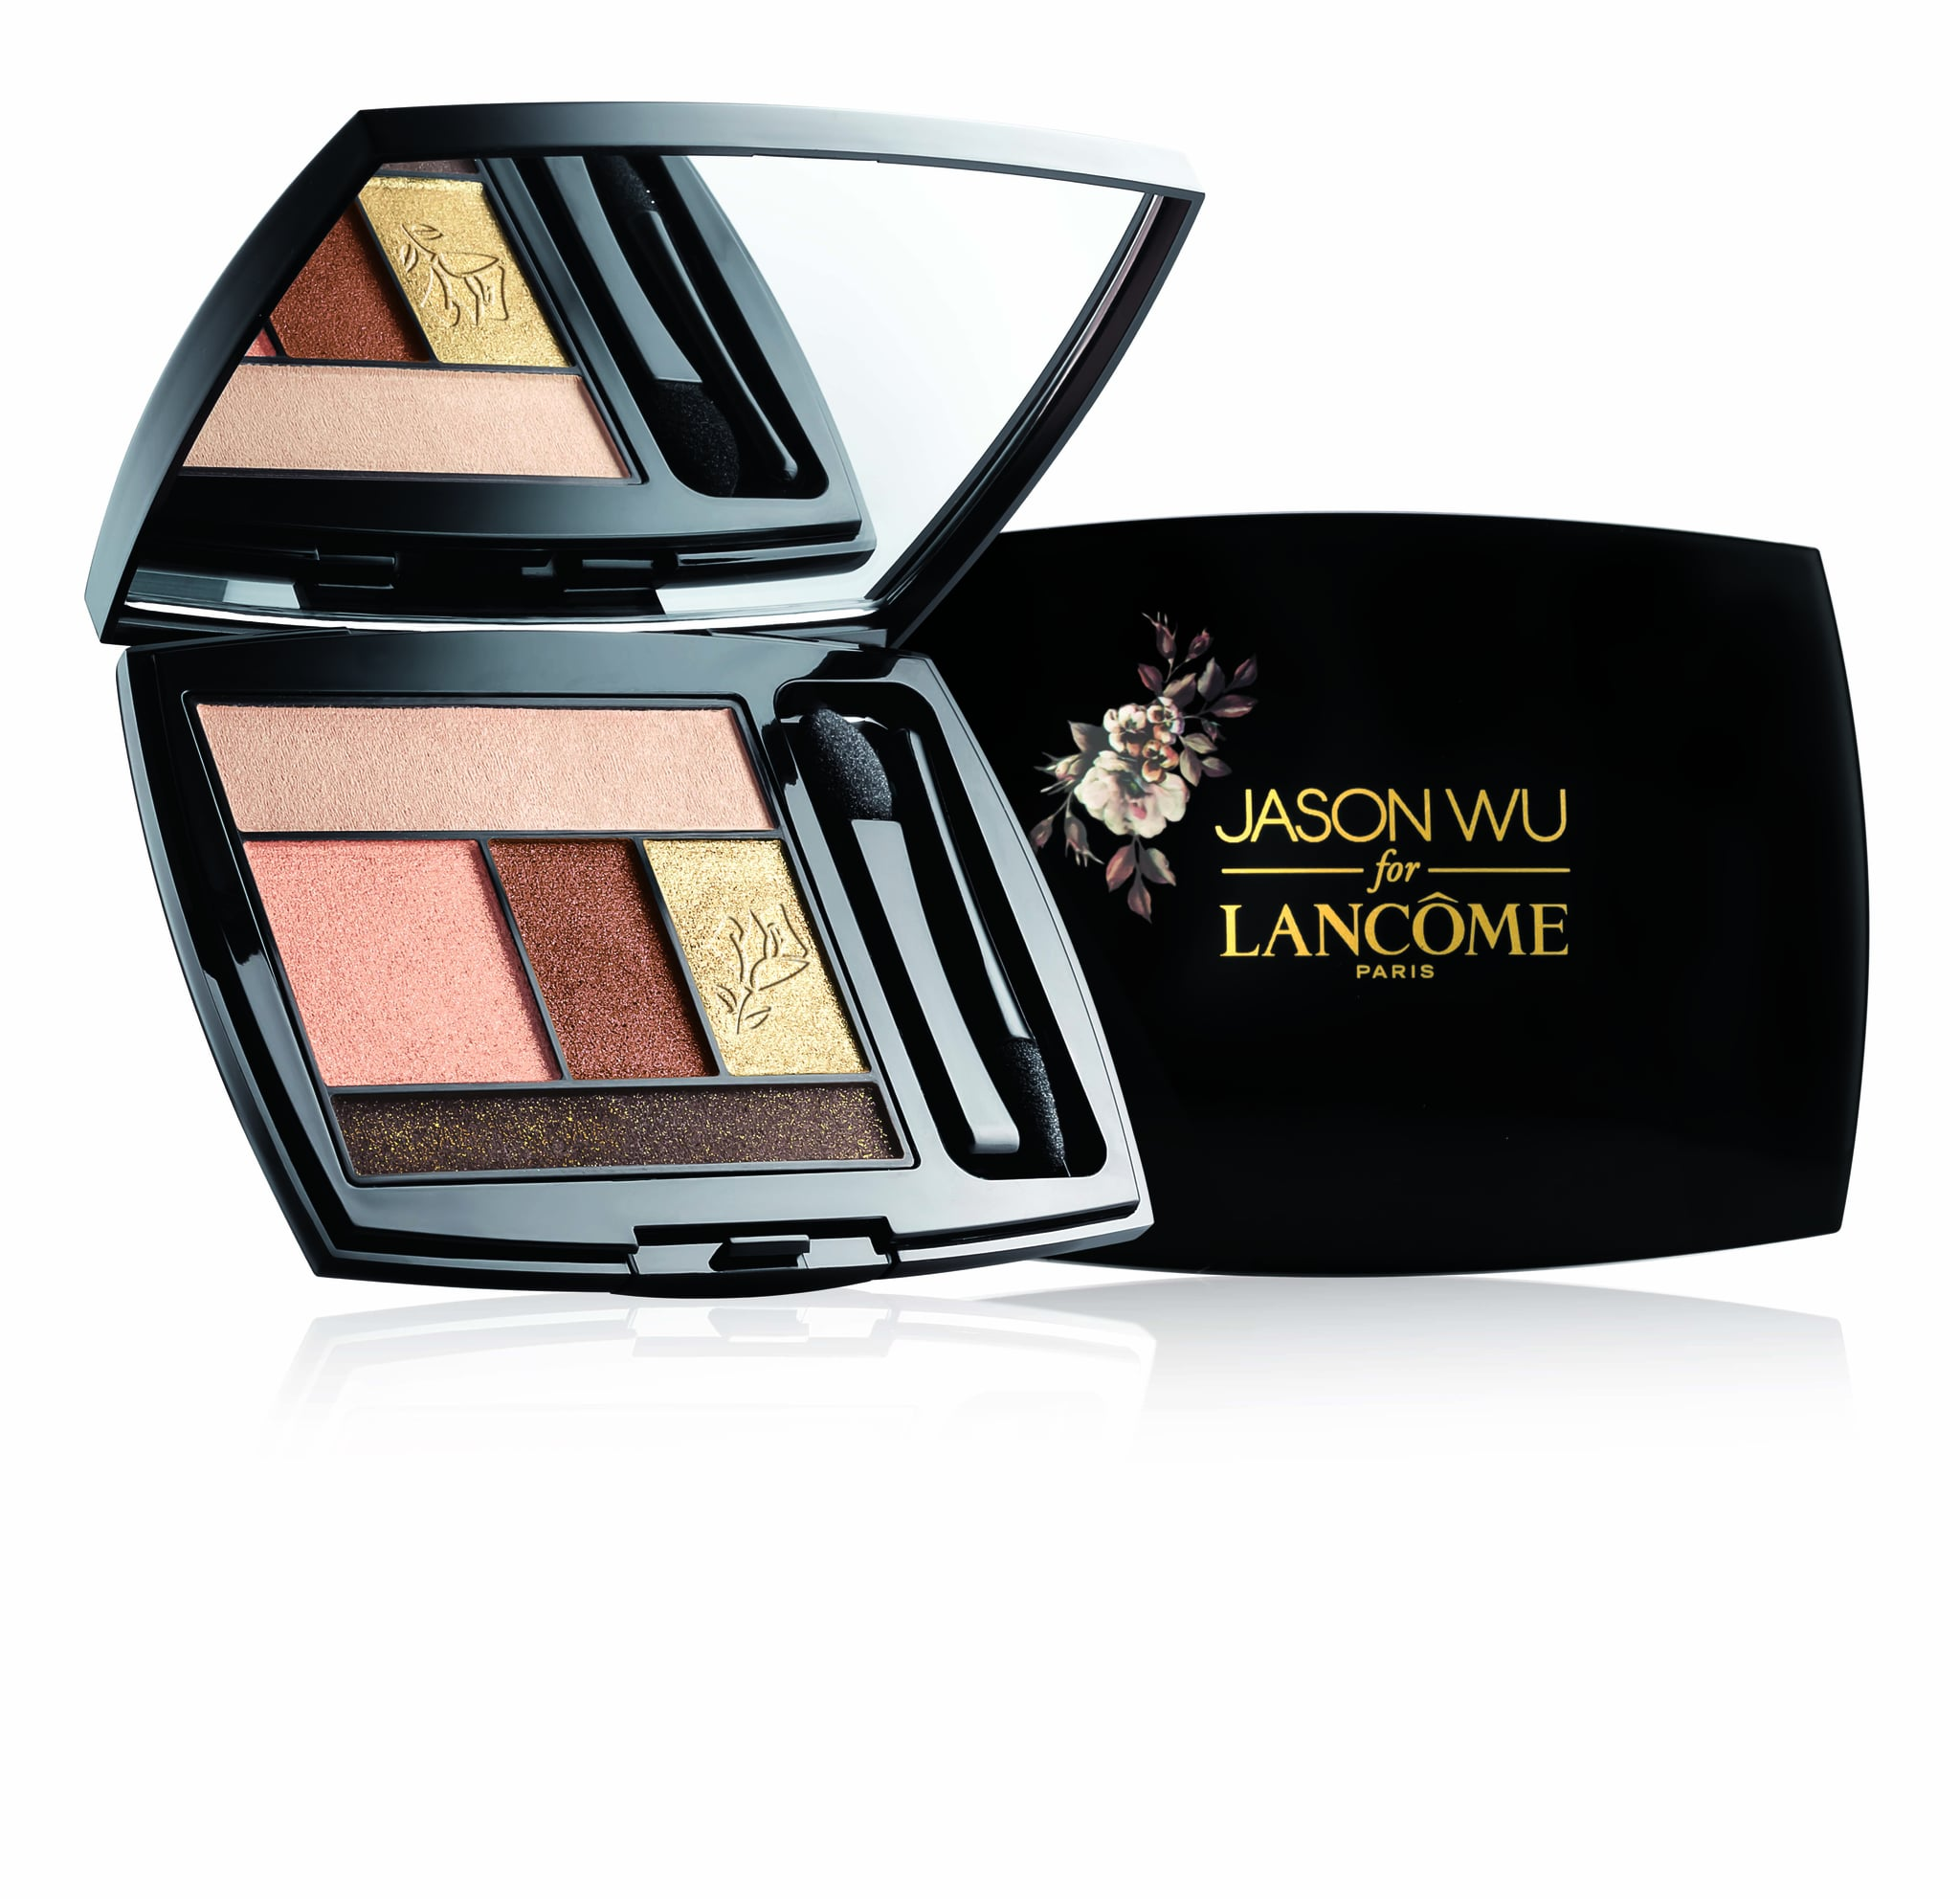 Lancome Jason Wu Color Design Eye Shadow Palette in Midnight Floral